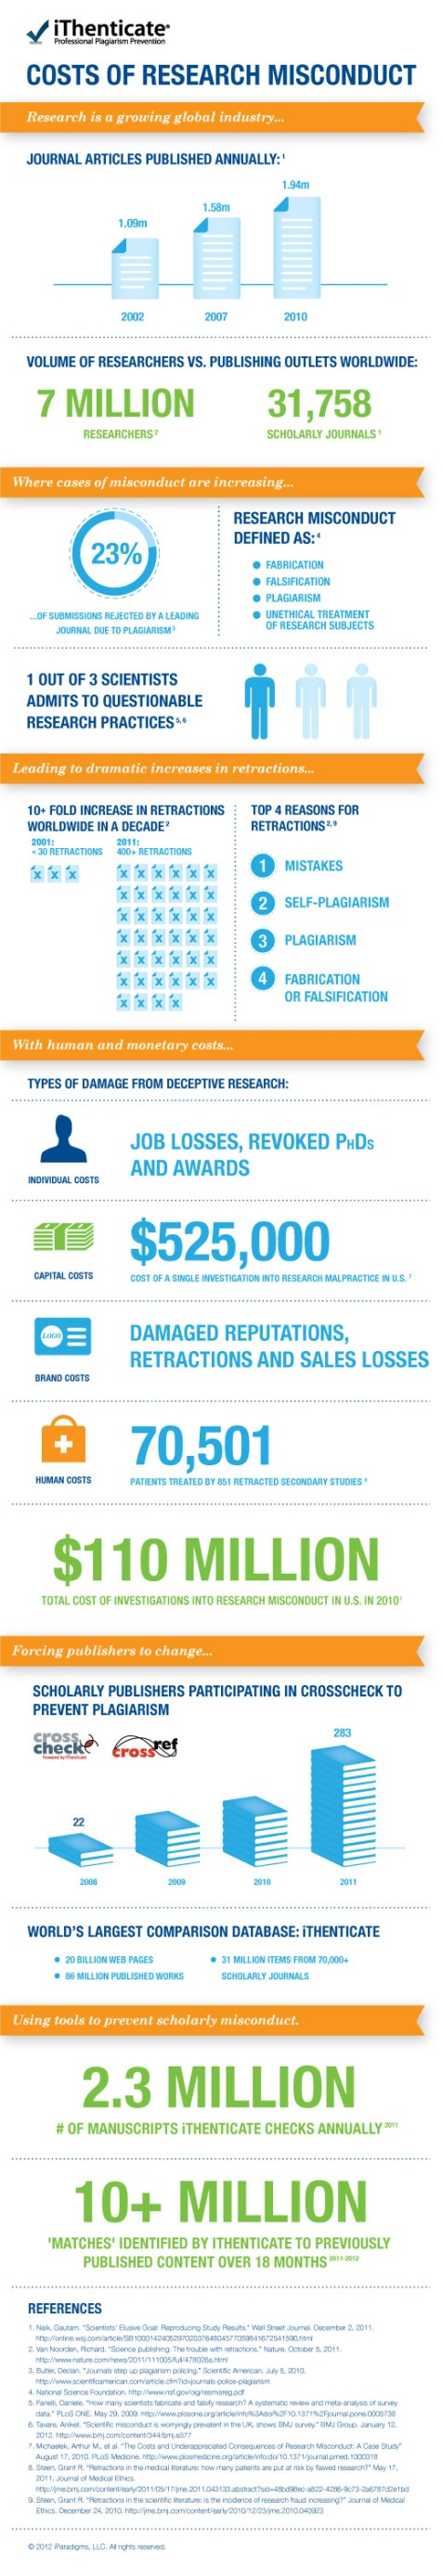 Costs+of+research+misconduct+infographic